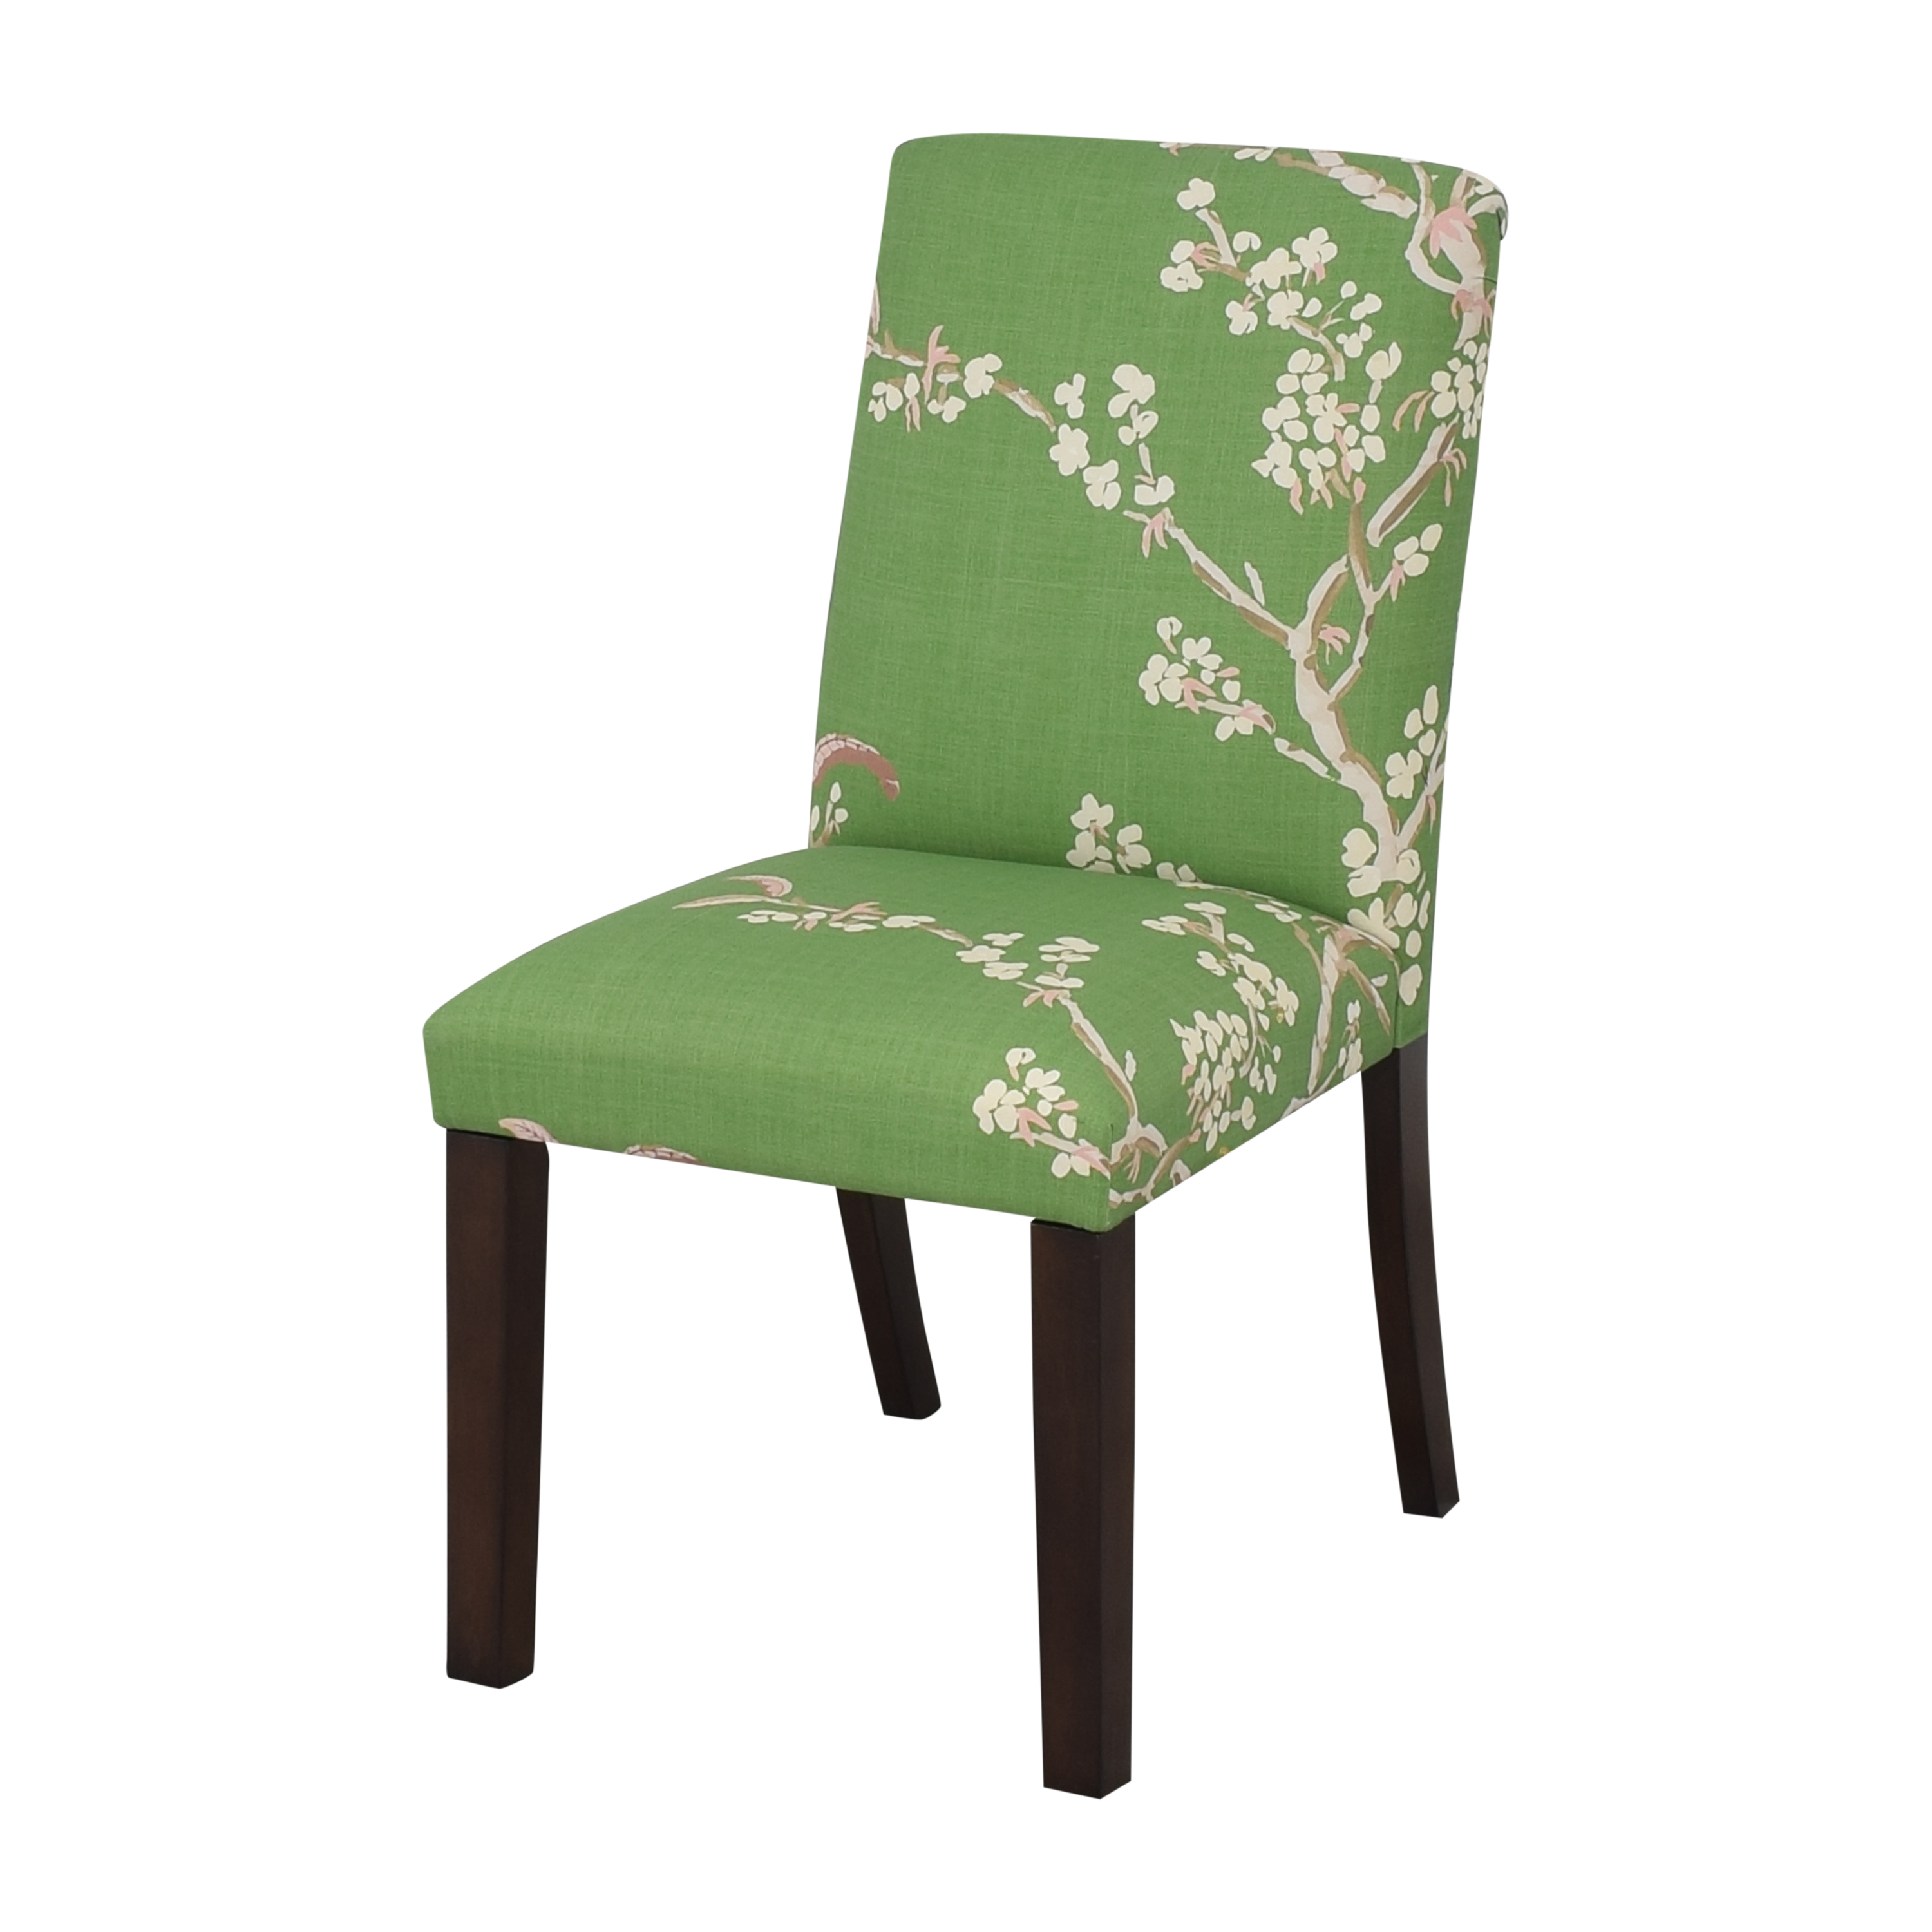 shop The Inside Classic Dining Chair The Inside Dining Chairs